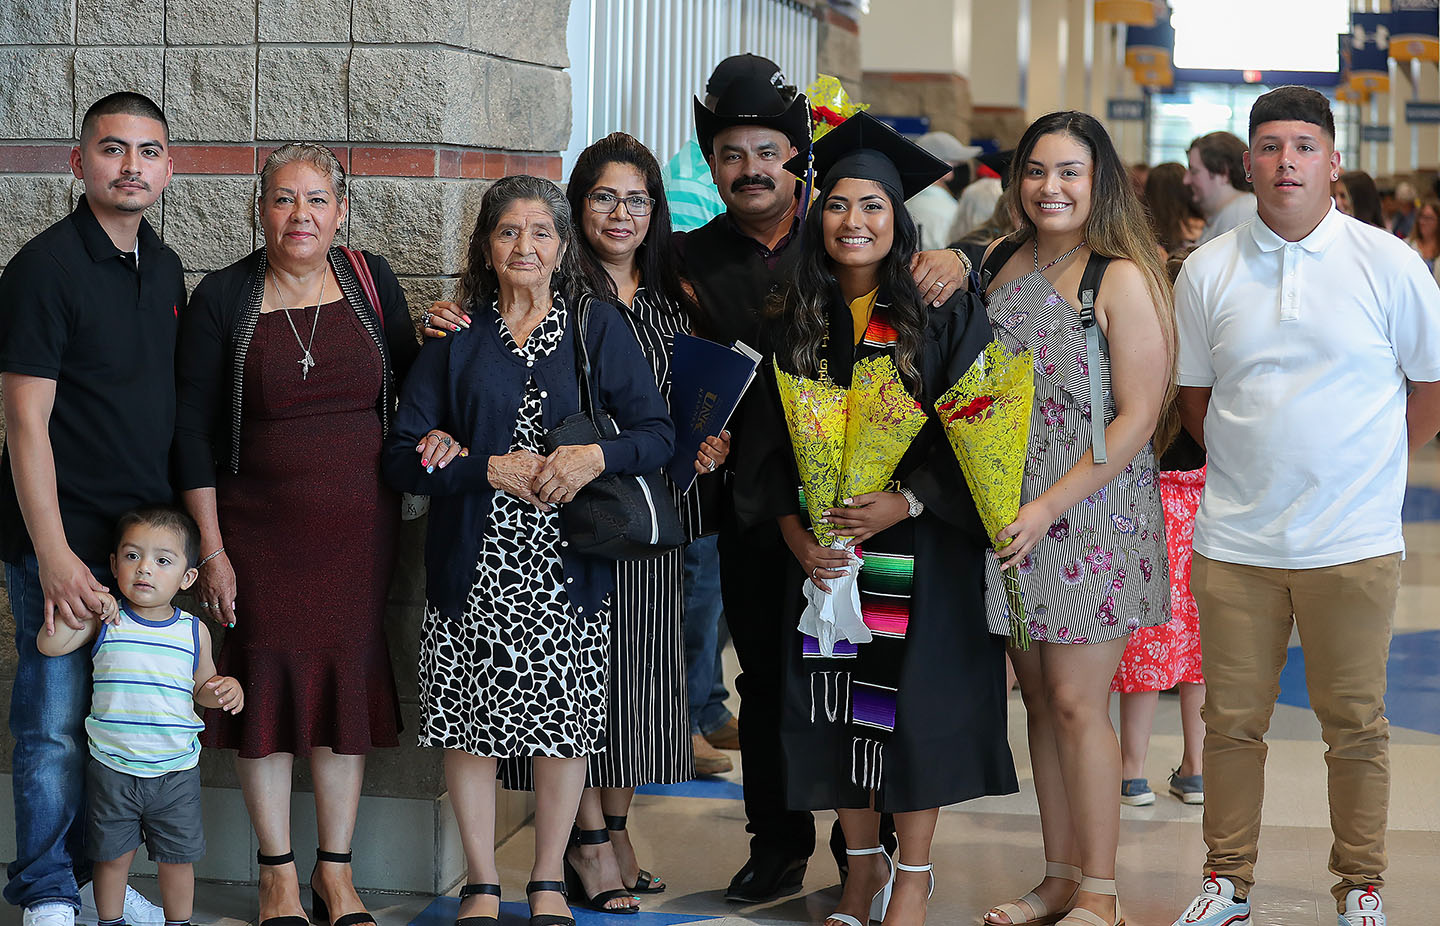 Edna Medina, third from right, poses for a photo with her family following Friday's summer commencement ceremony at UNK's Health and Sports Center.